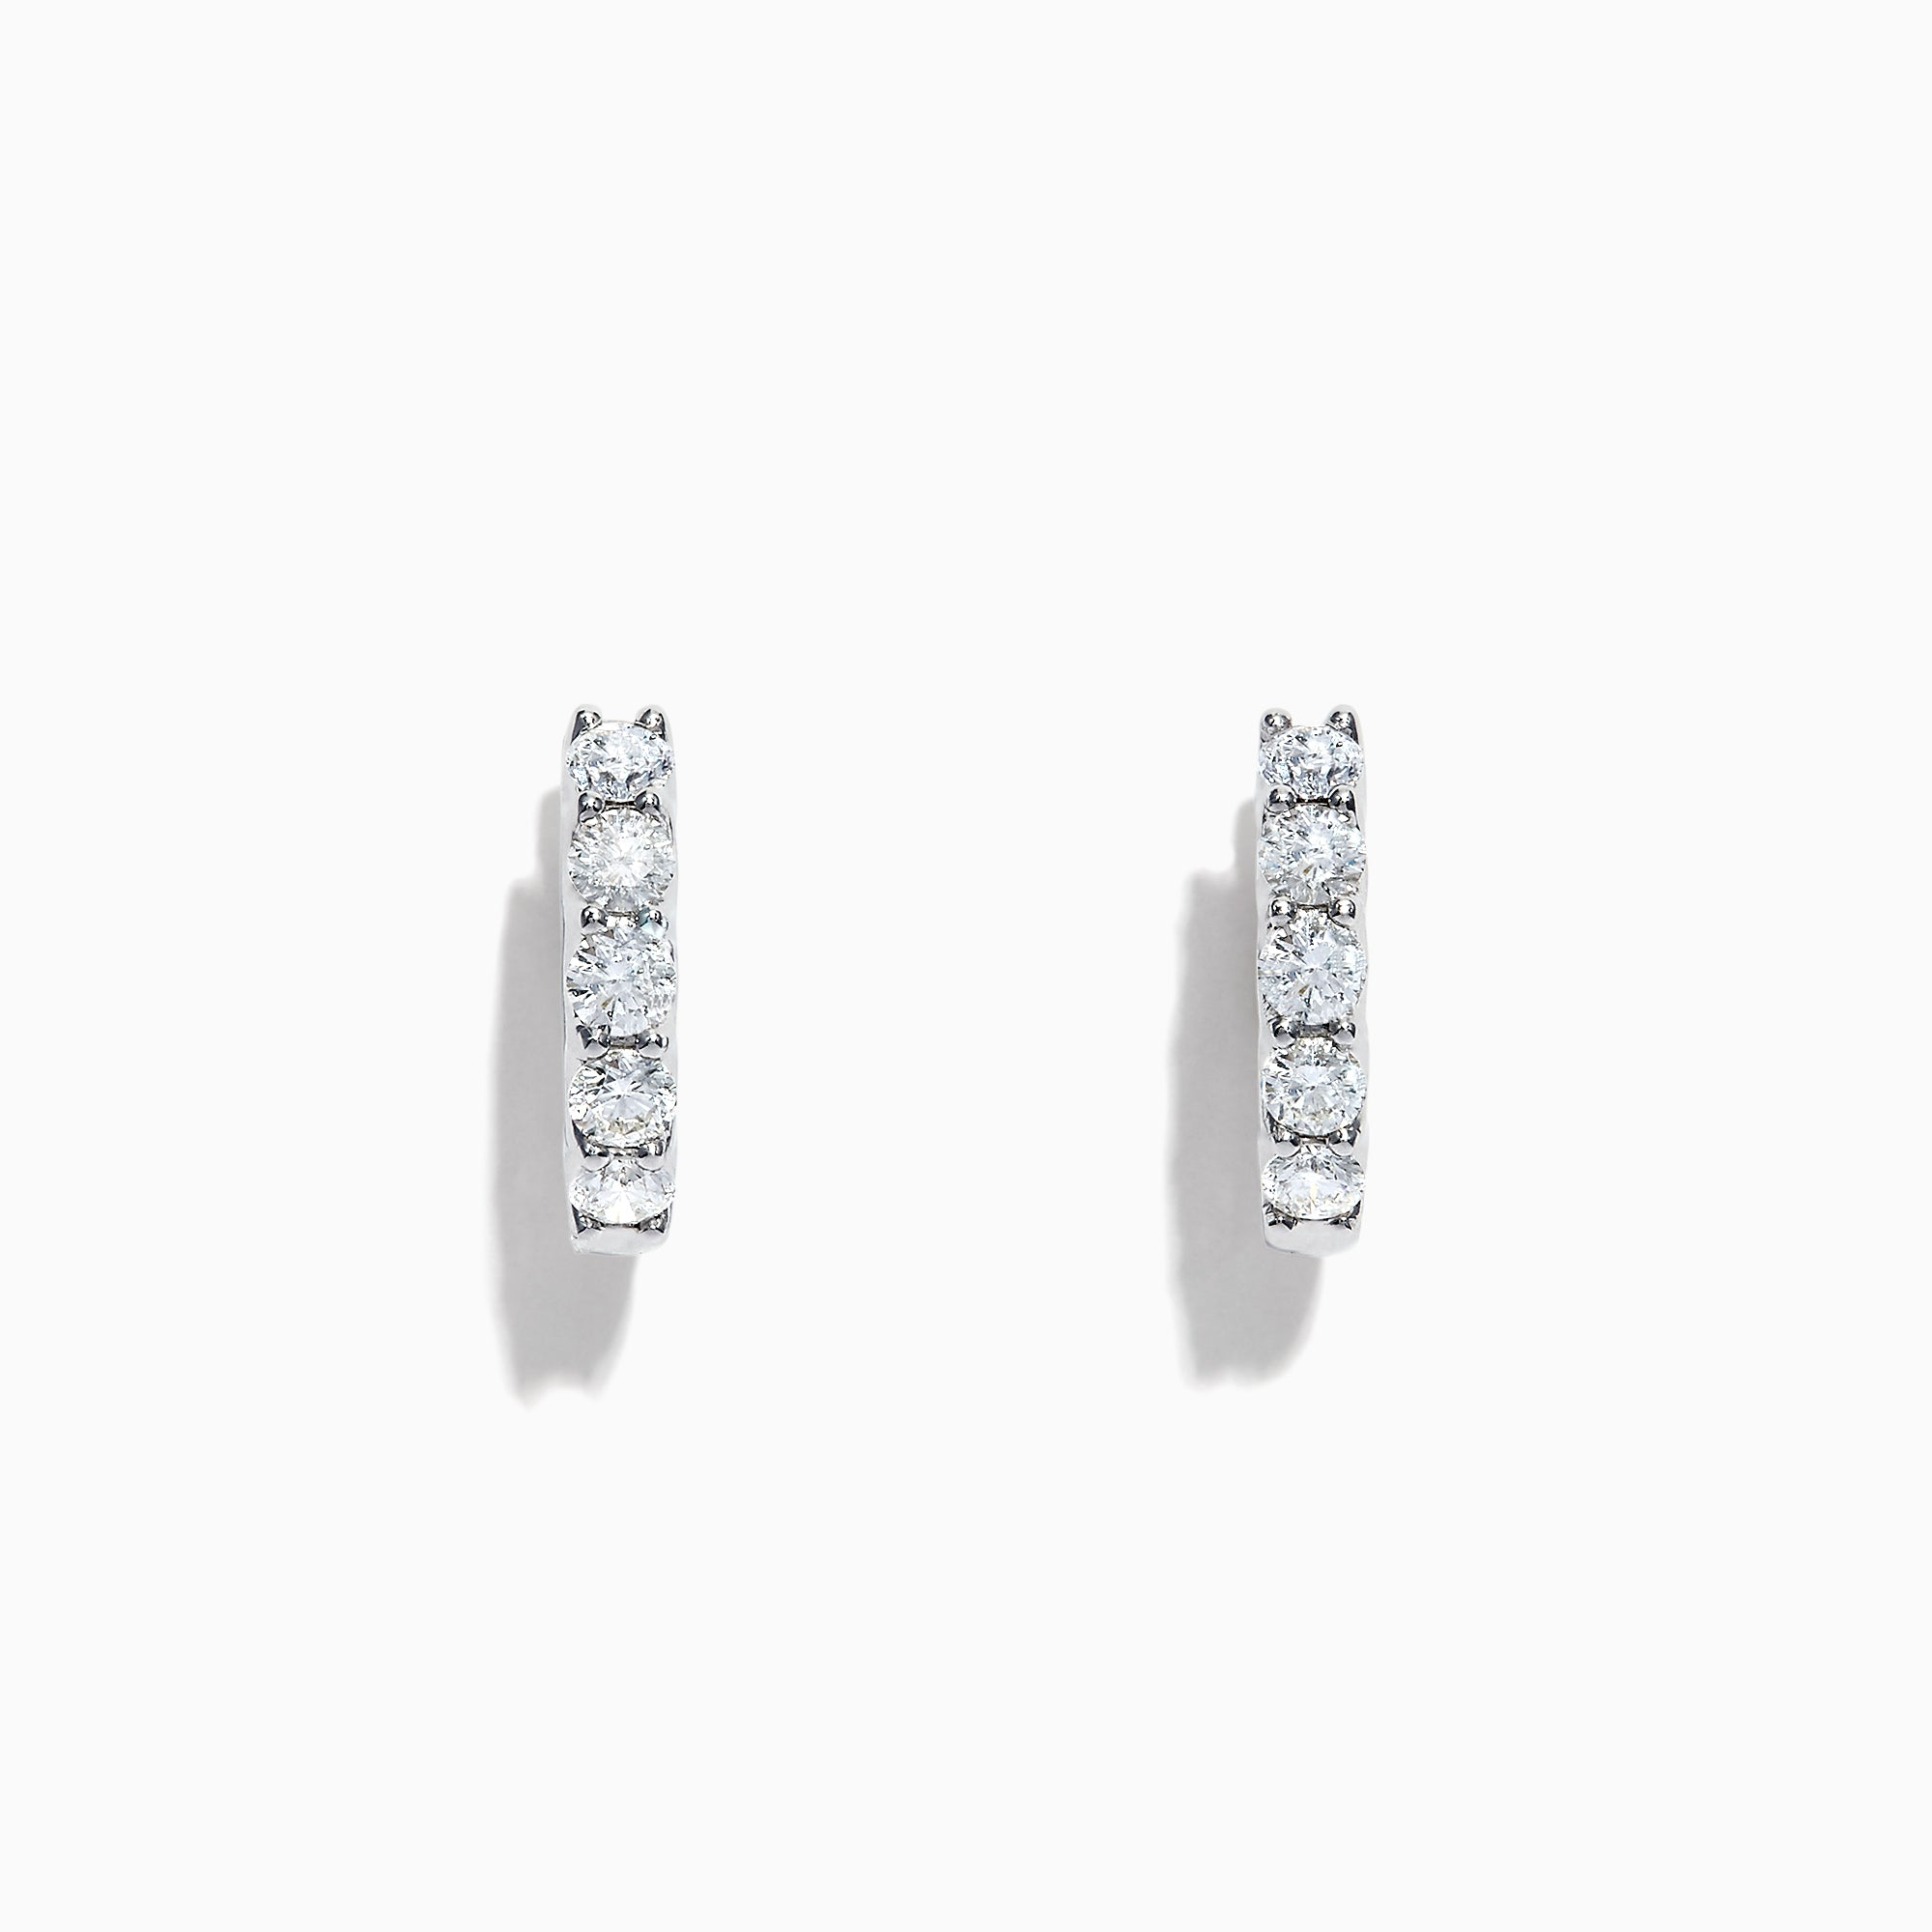 Effy Pave Classica 14K White Gold Diamond Hoop Earrings, 0.98 TCW